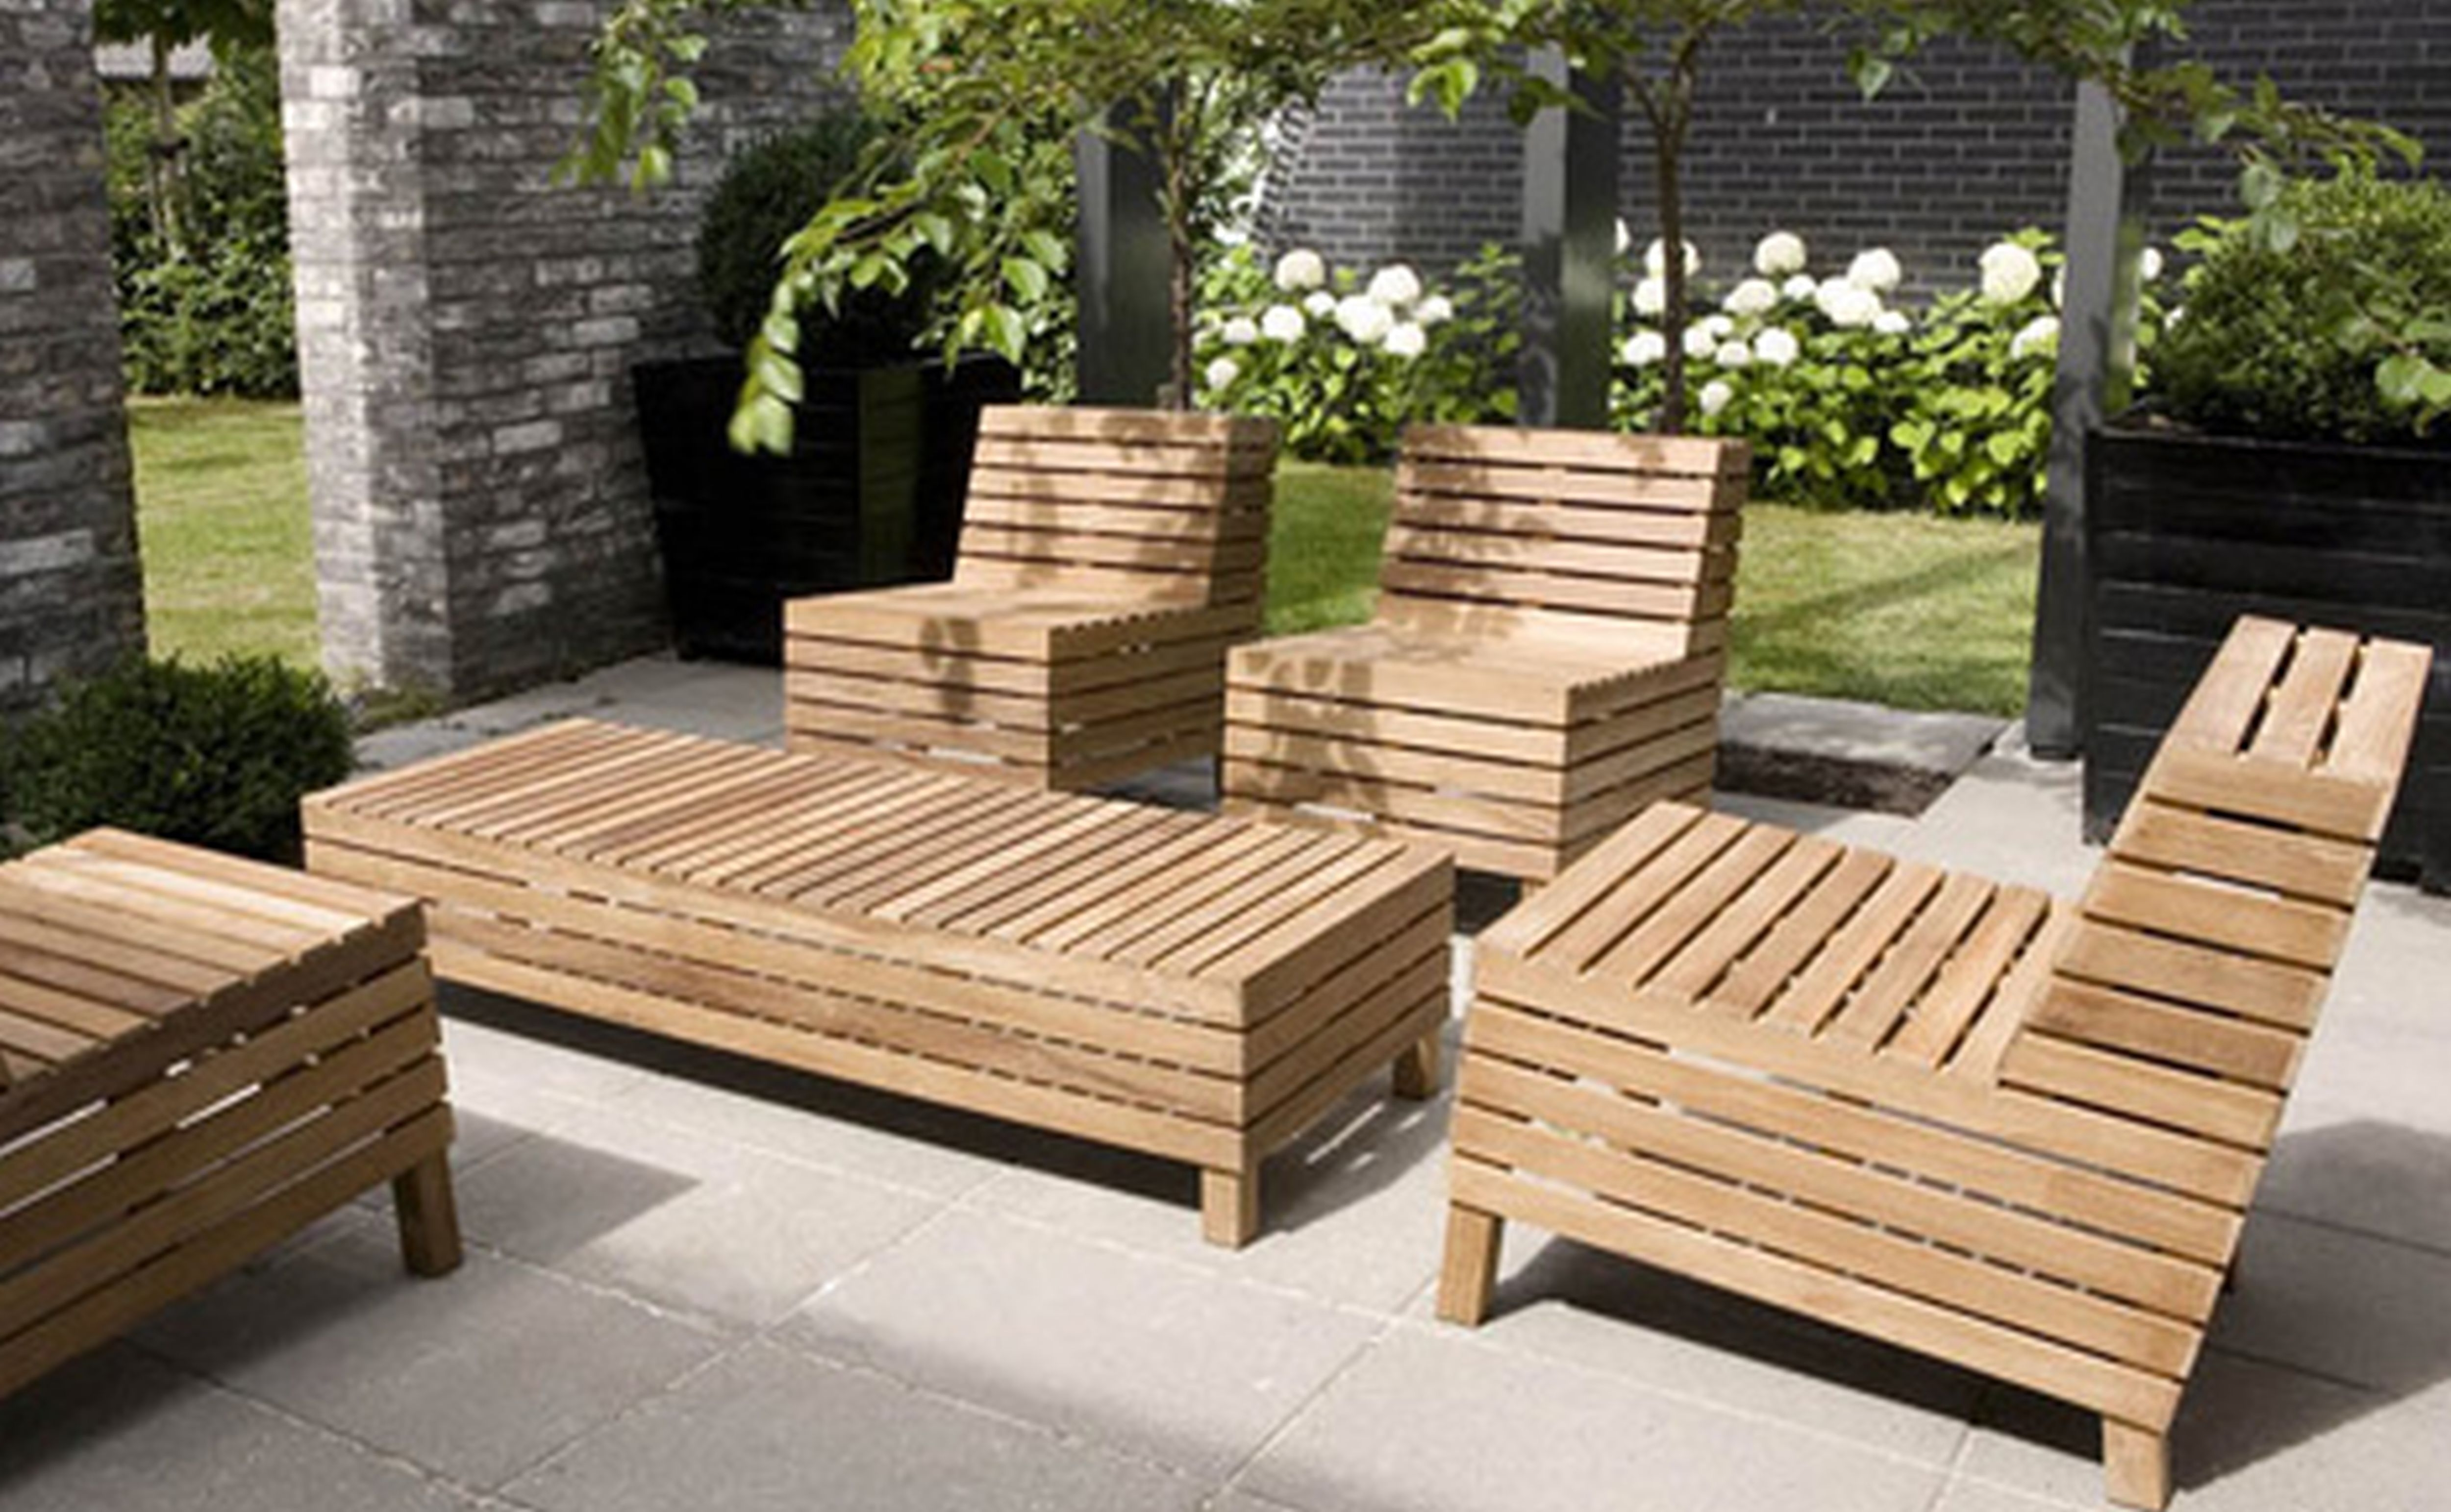 Fashionable Patio Furniture Near Me — Teak Furnitures : High Demand Of Teak Within Outdoor Sofas And Chairs (View 8 of 15)